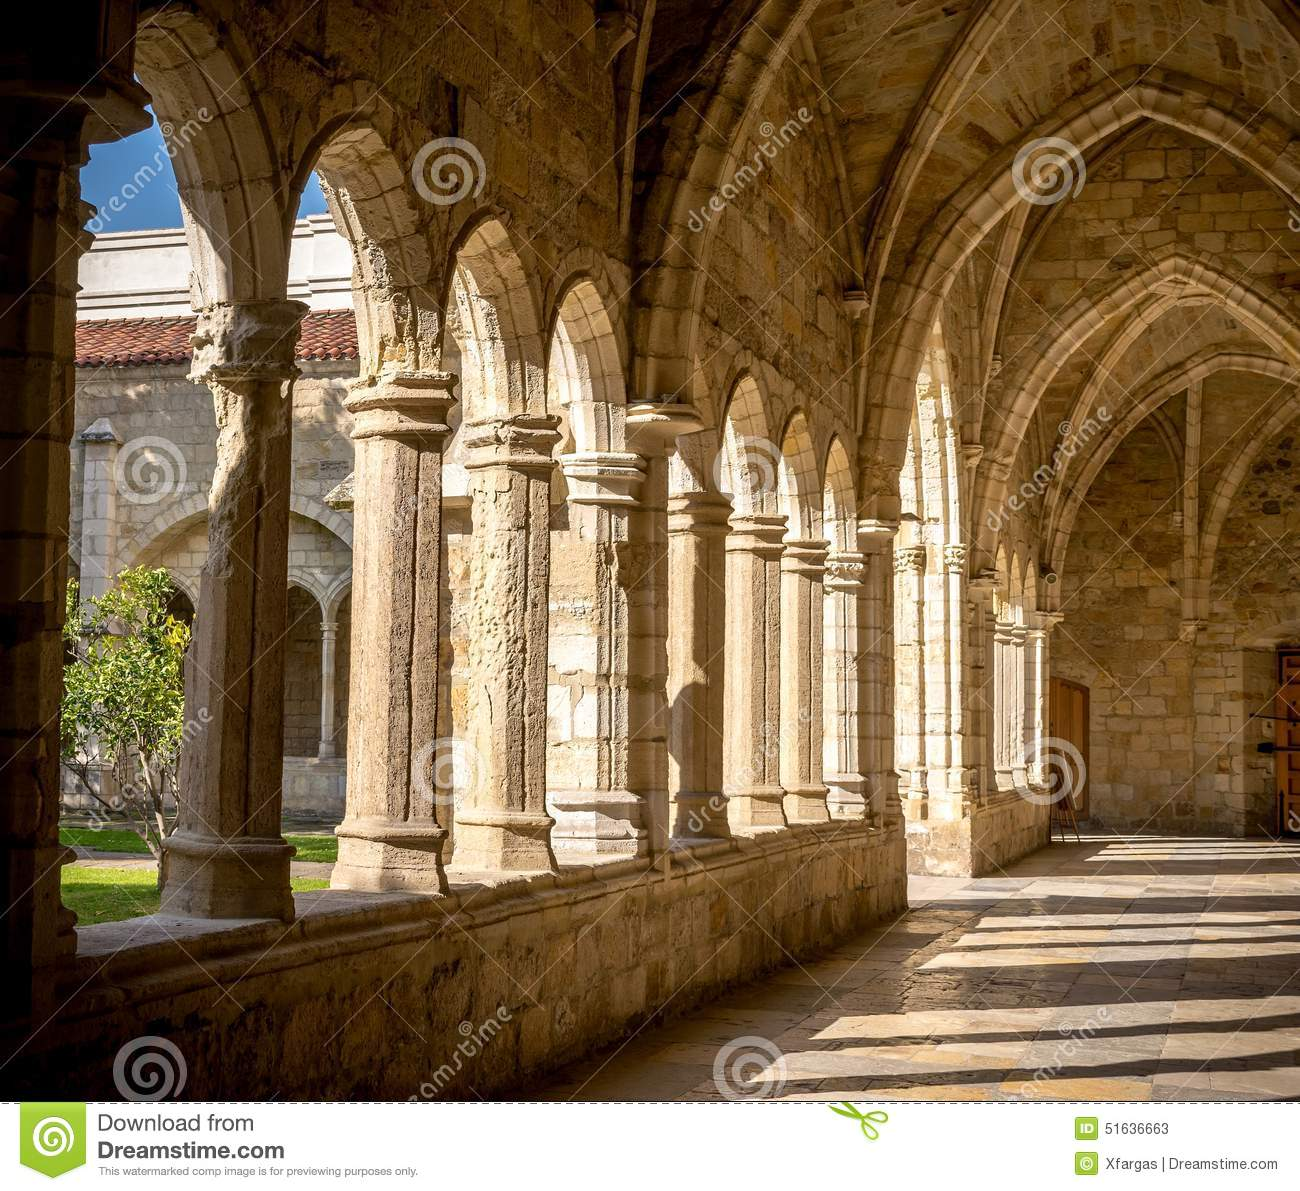 Santander Cathedral, Hallway, Columns And Arches Of The Cloister.